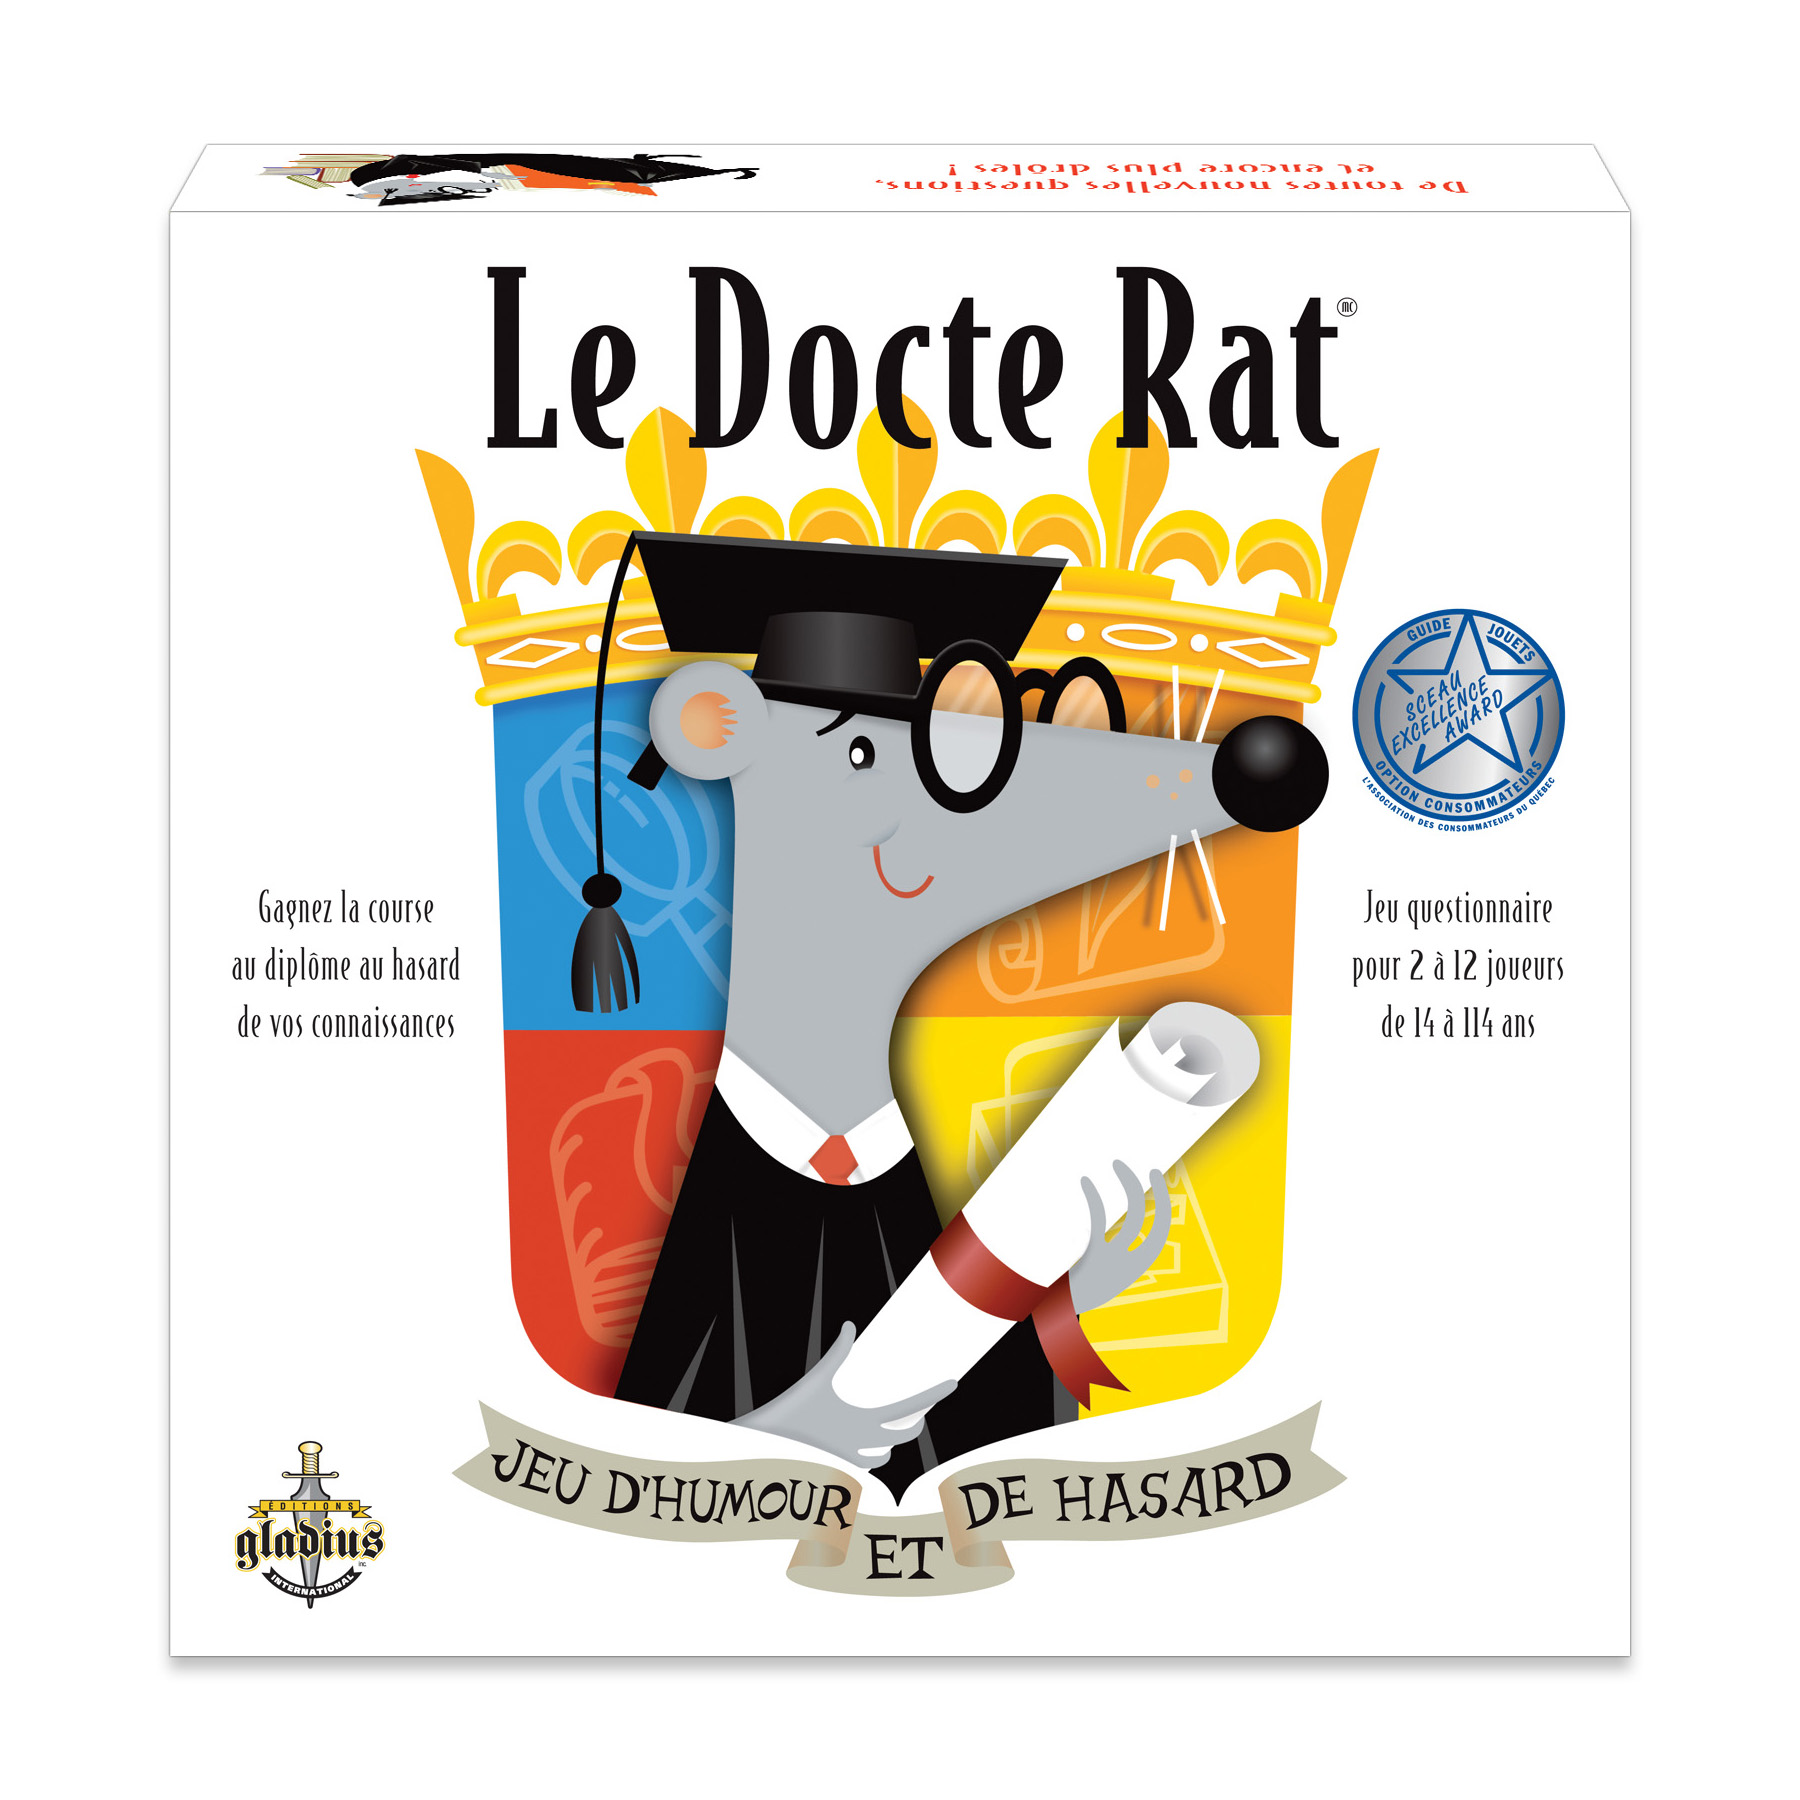 Le Docte Rat boîte / Le Docte Rat box